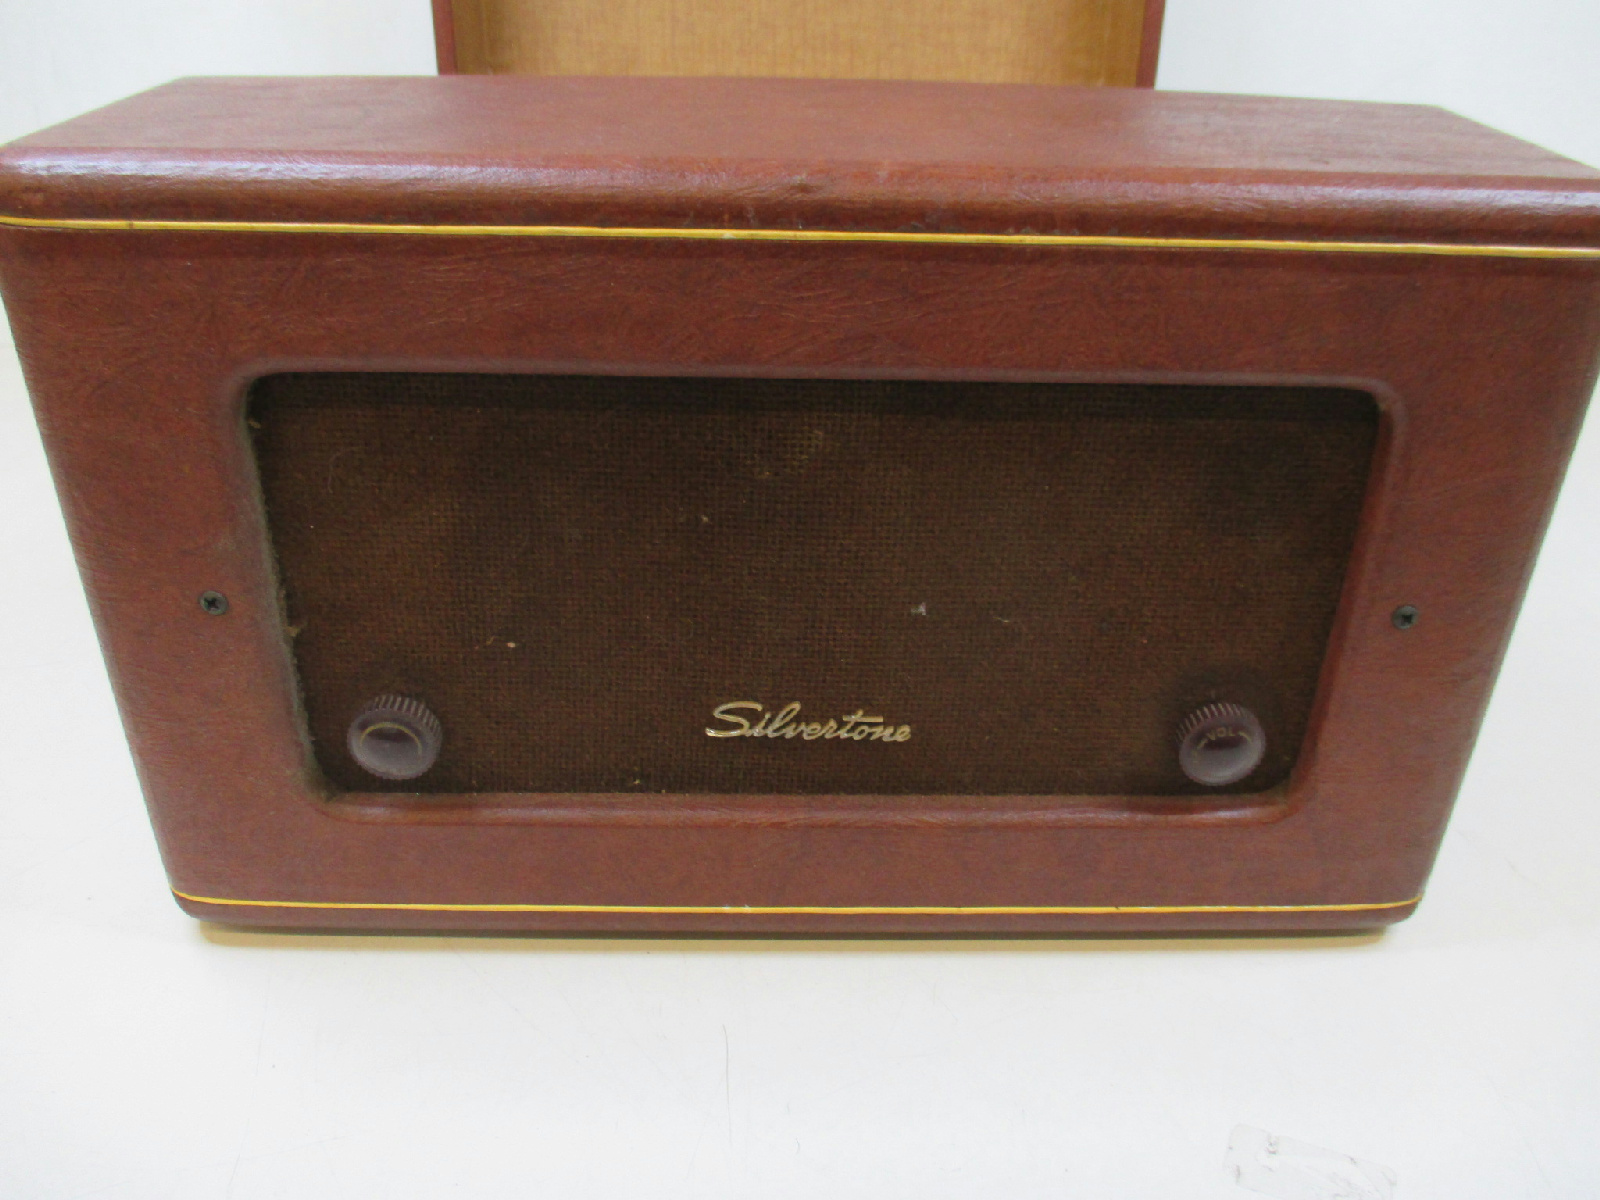 Vintage Silvertone Sears Roebuck Record Player Model 1249 ...